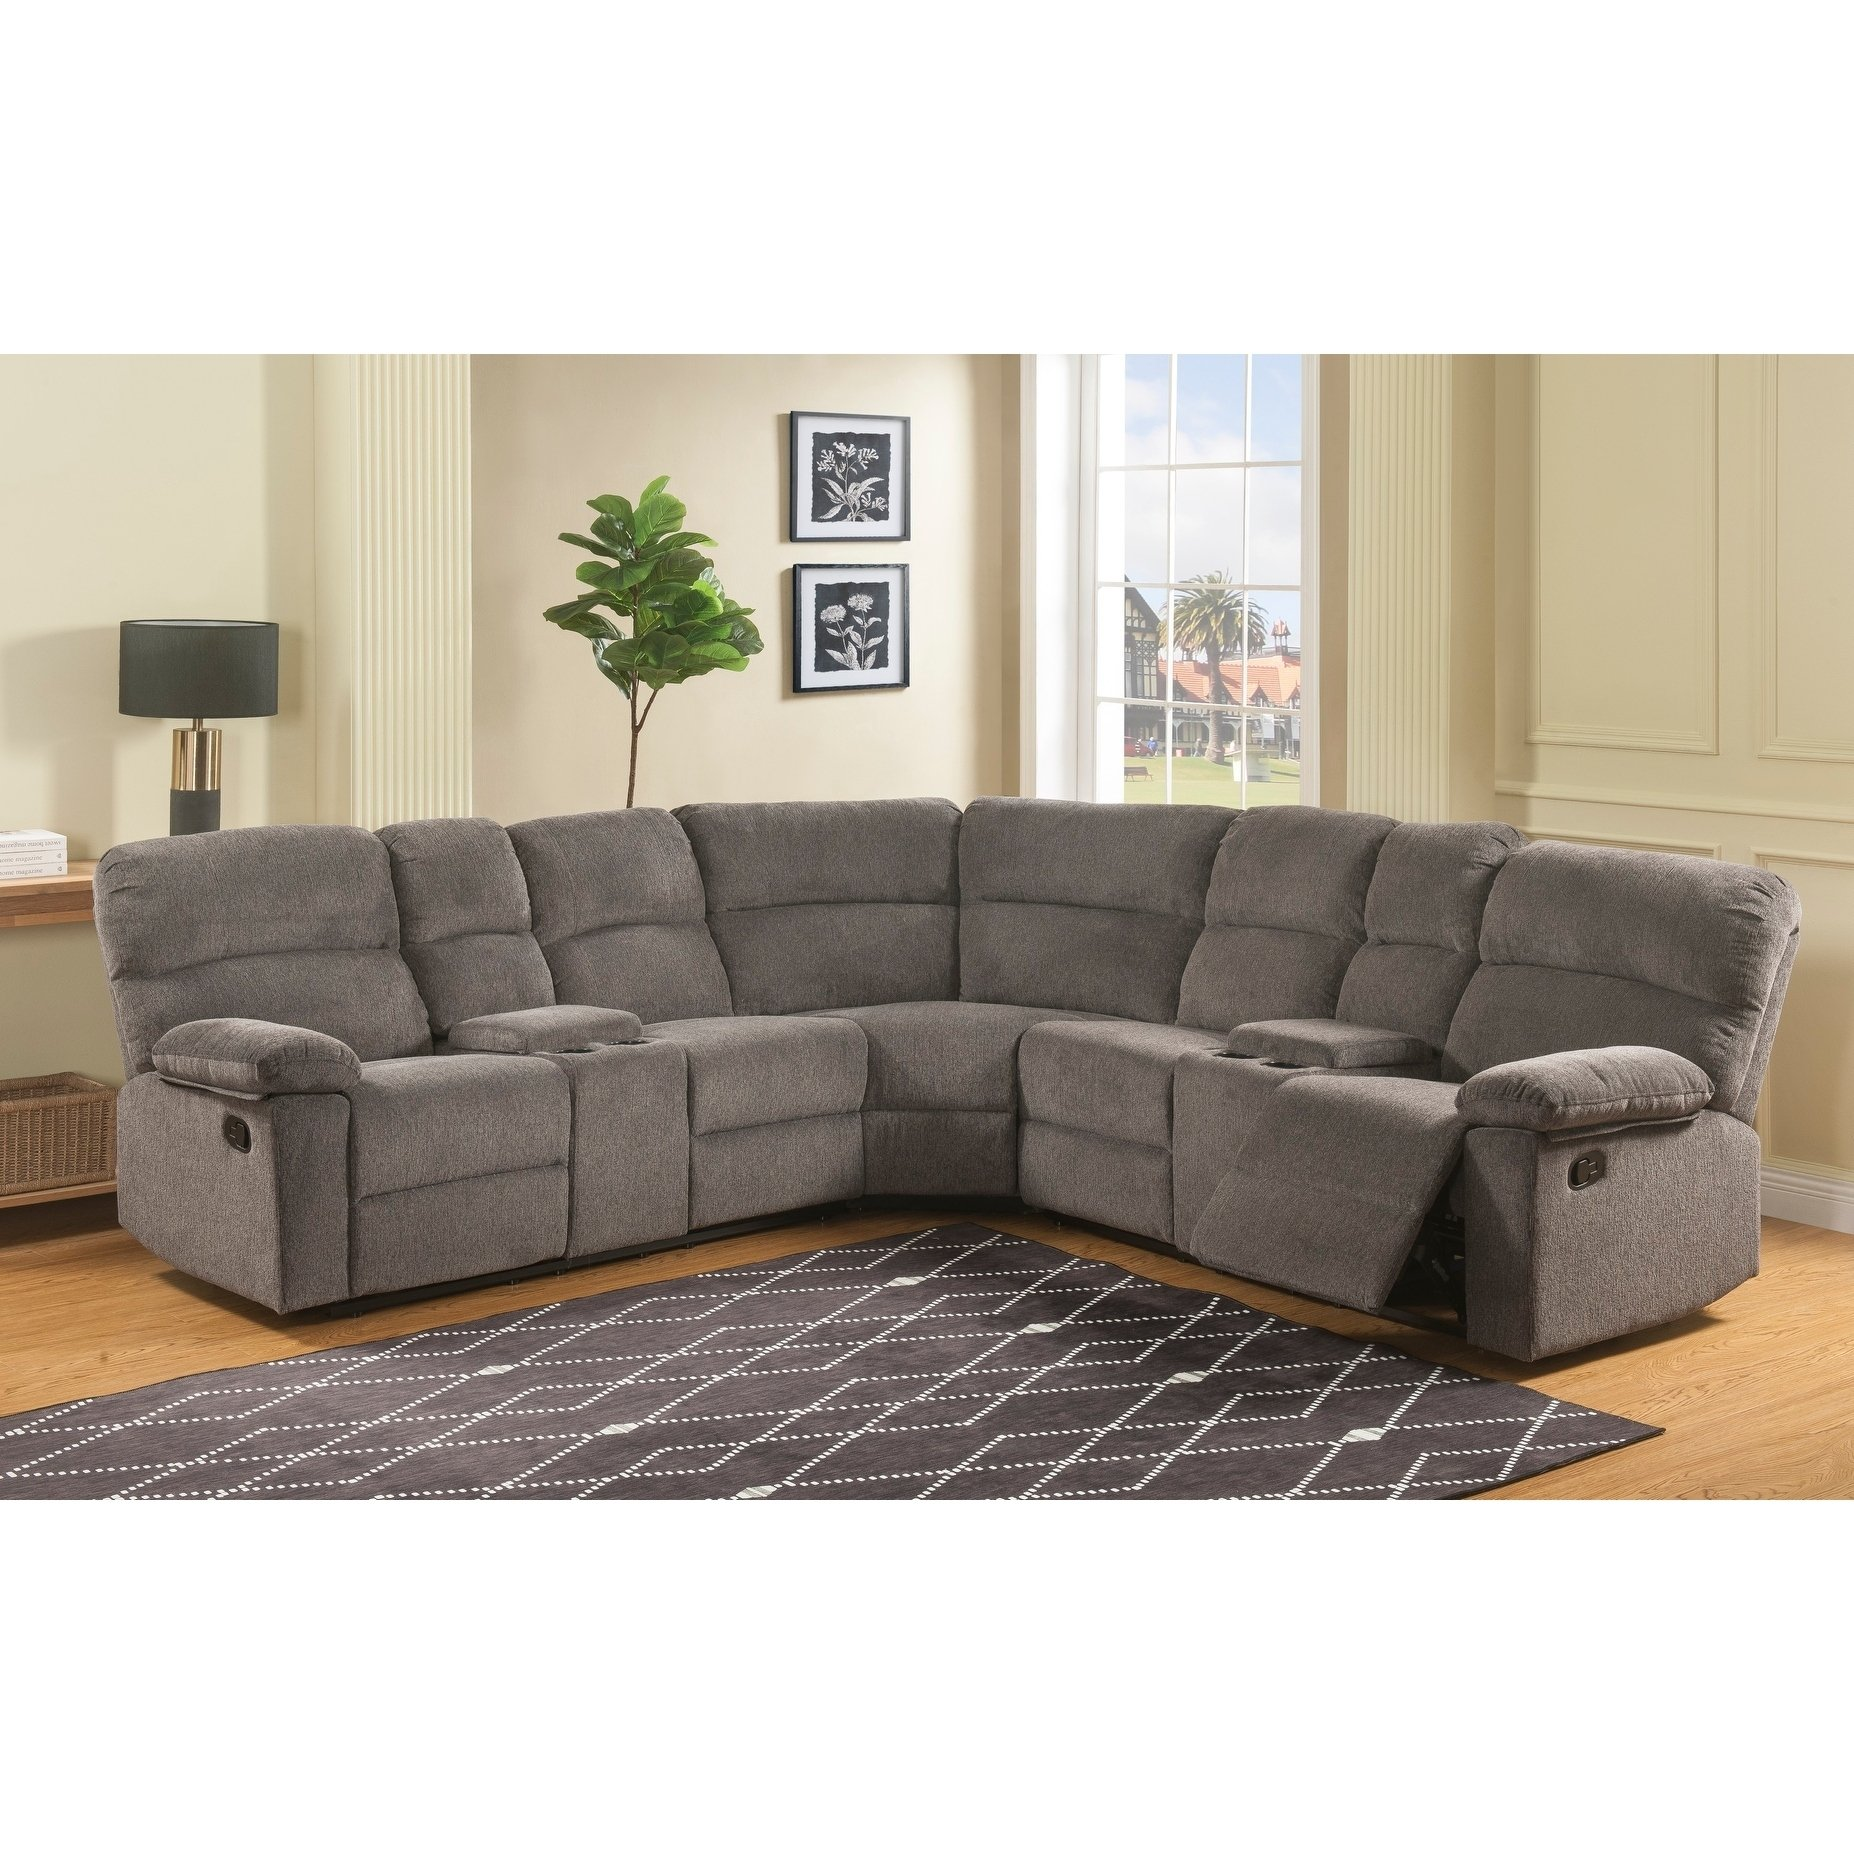 Clark 3 Piece Reclining Sectional With Hidden Storage By Greyson